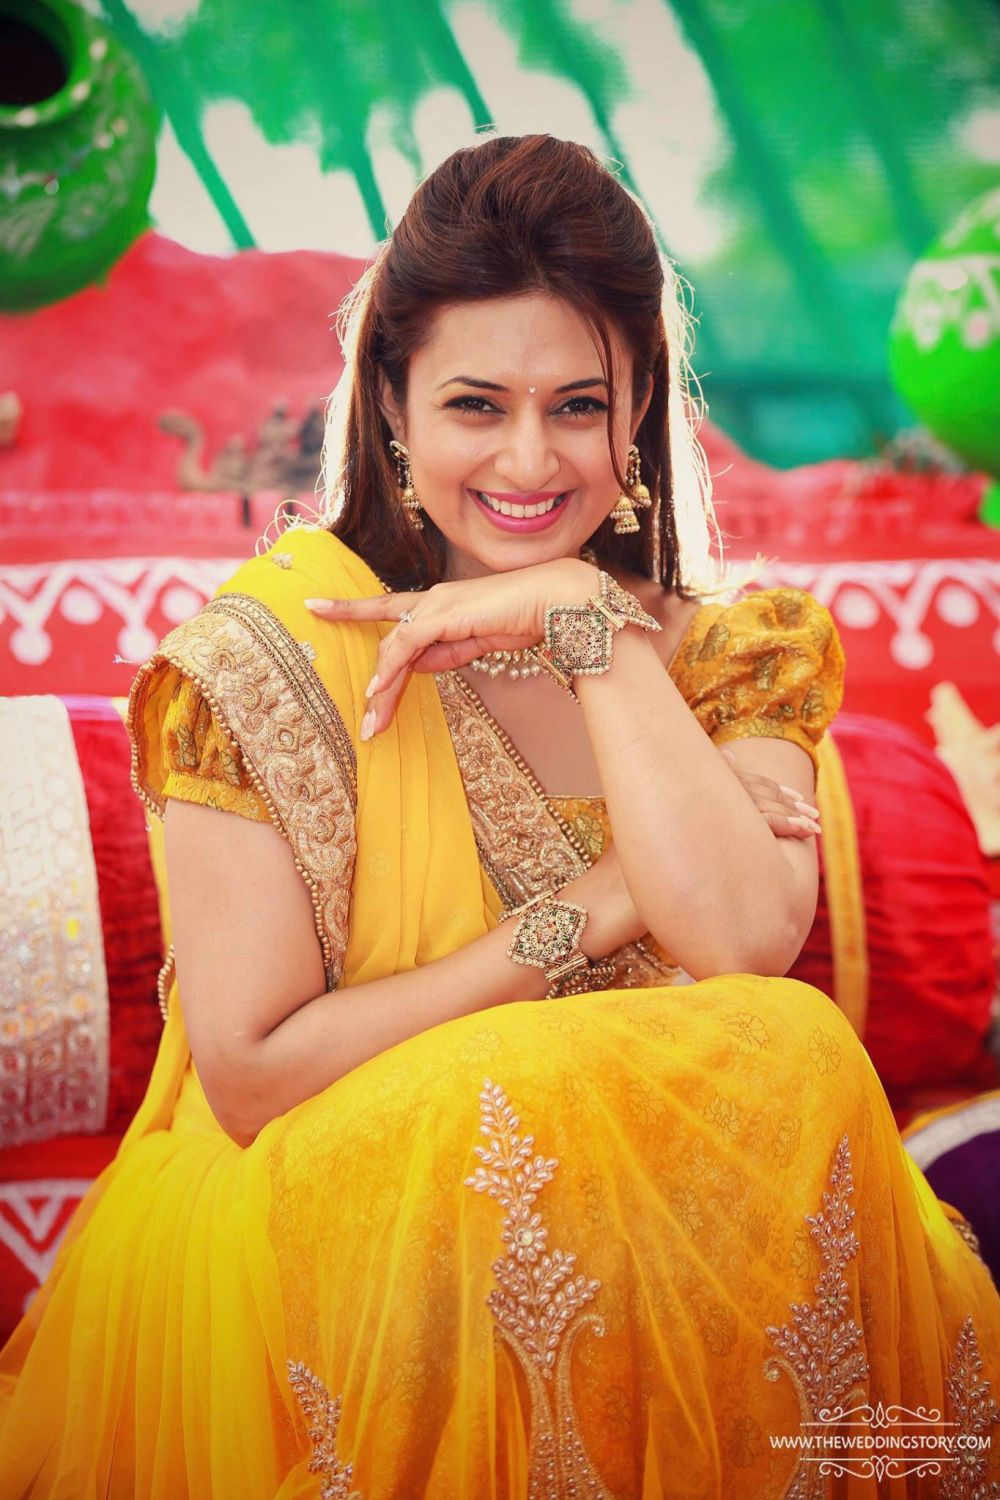 Divyanka The Blushing Bride Indian Wedding Couple Photography Indian Wedding Bride Indian Wedding Photography Poses